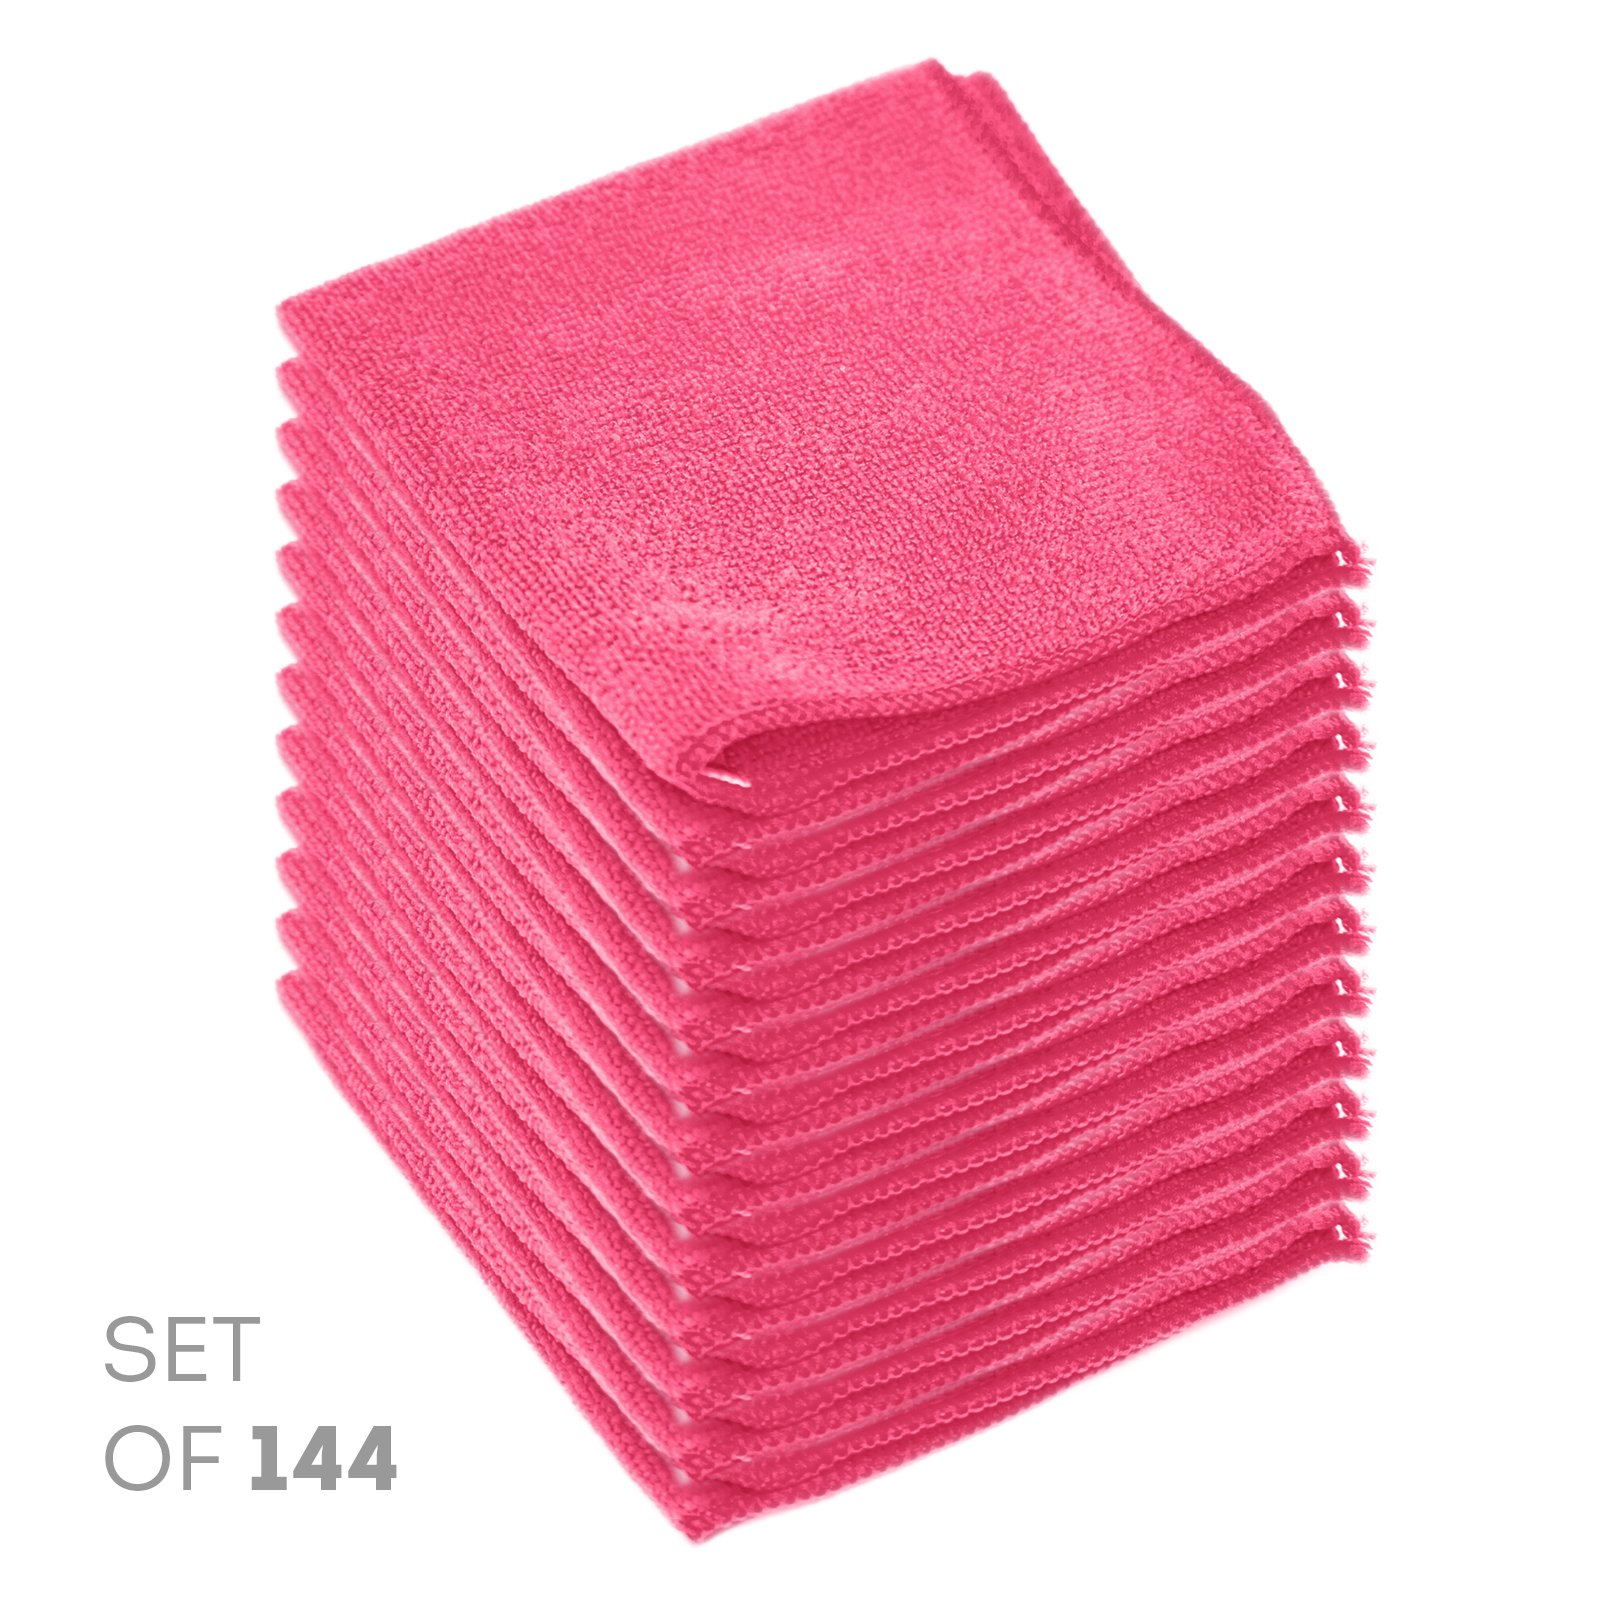 Super Soft Microfiber Cleaning Cloth - Set of 144 Pink Washcloths - 12 x 12 Inches - By Etienne Alair